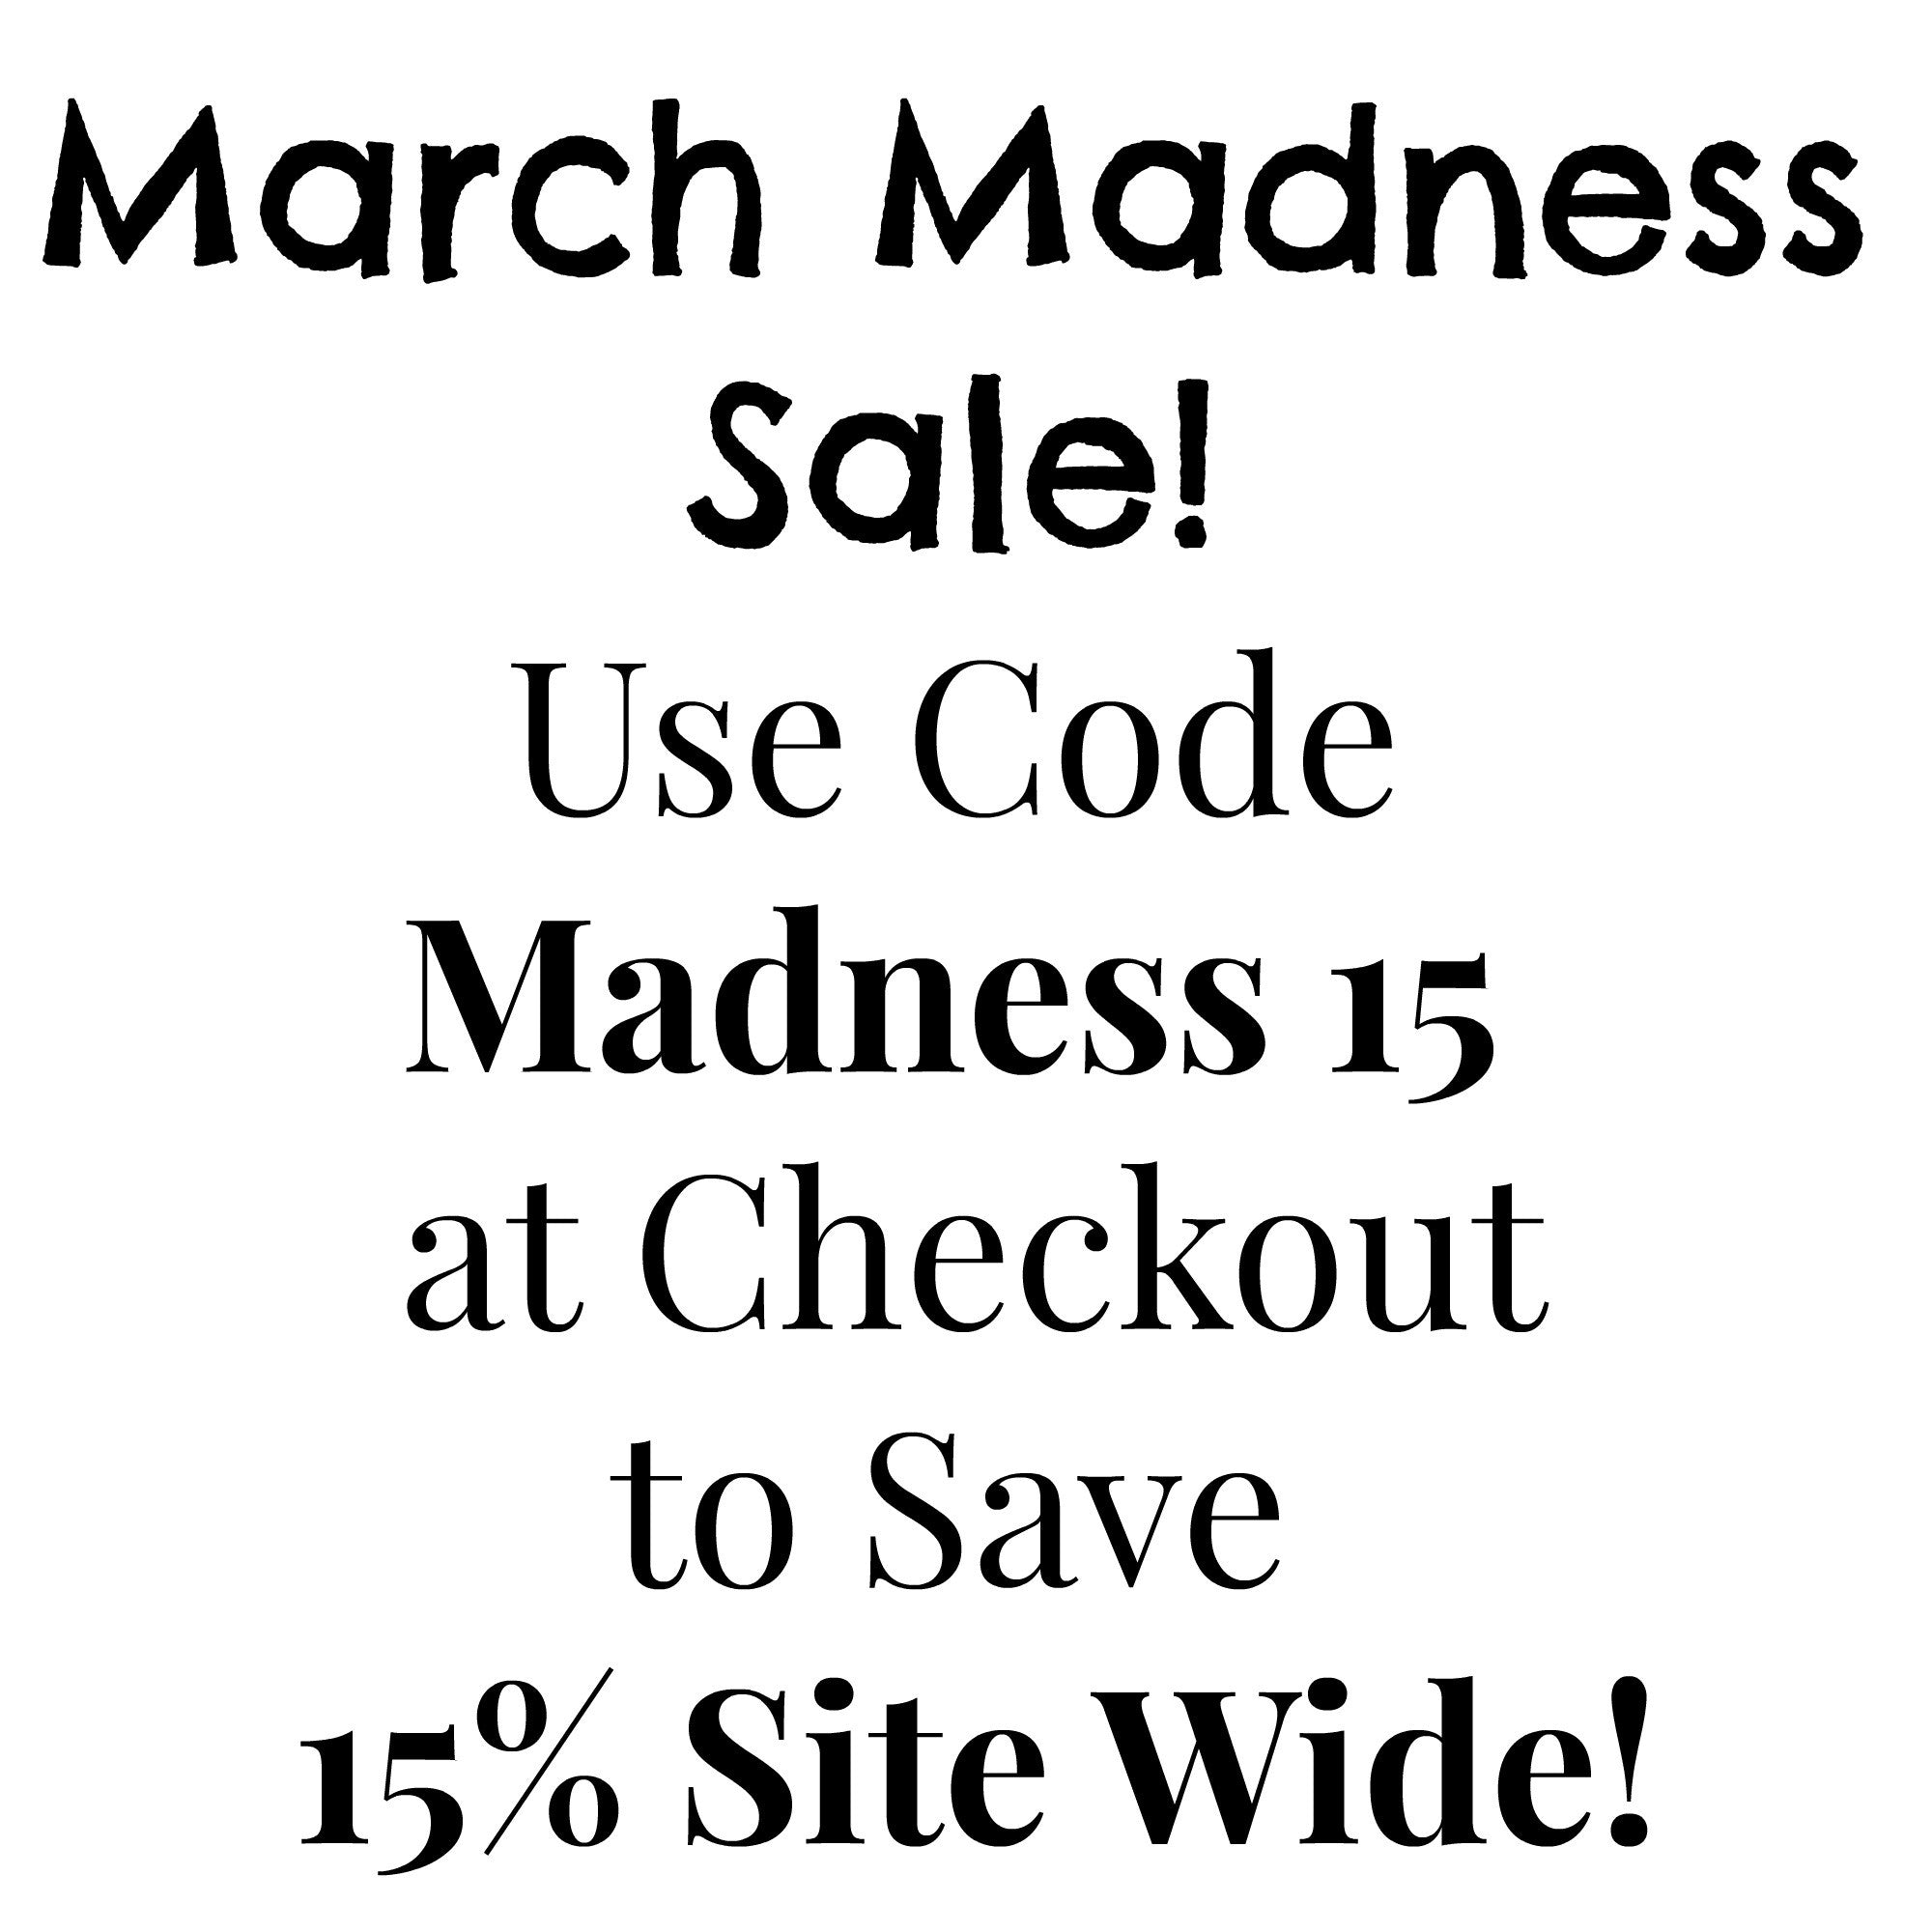 March Madness Sale!